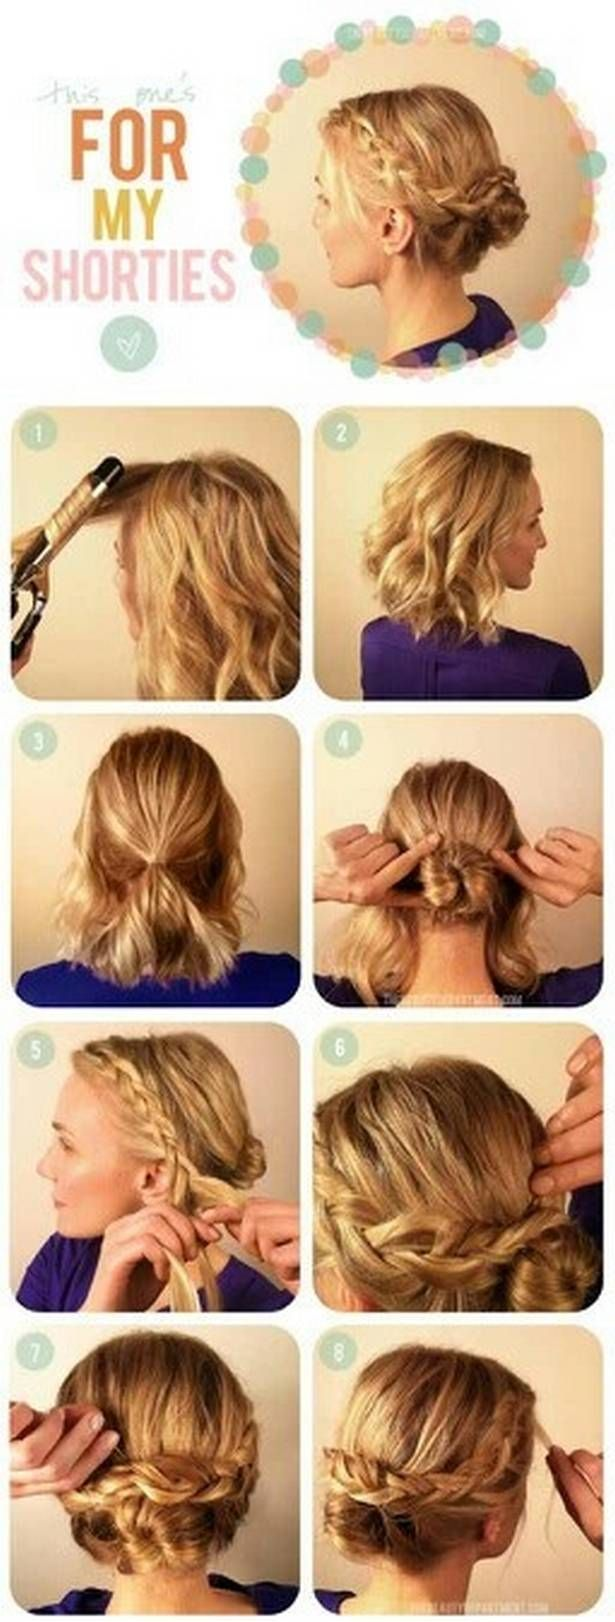 step by step in easy hairstyles for short hair : simple